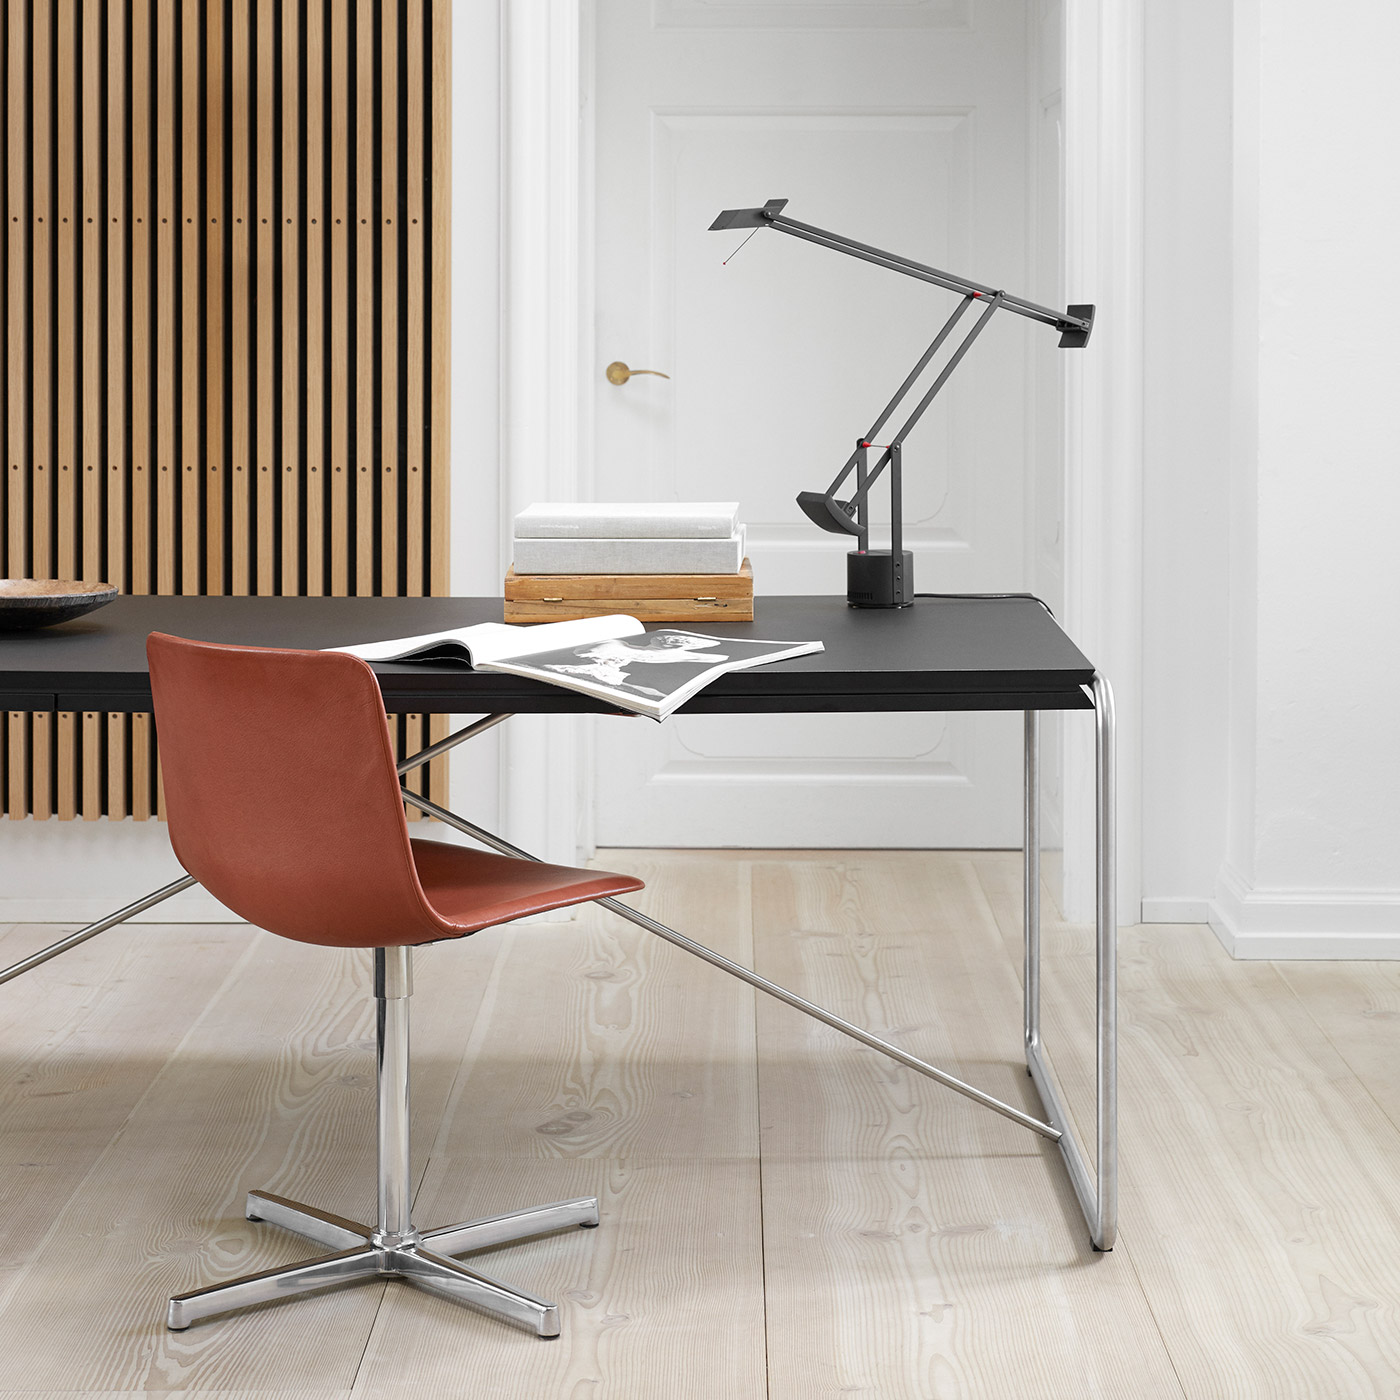 Pato swivel chair in red and chrome by Fredericia